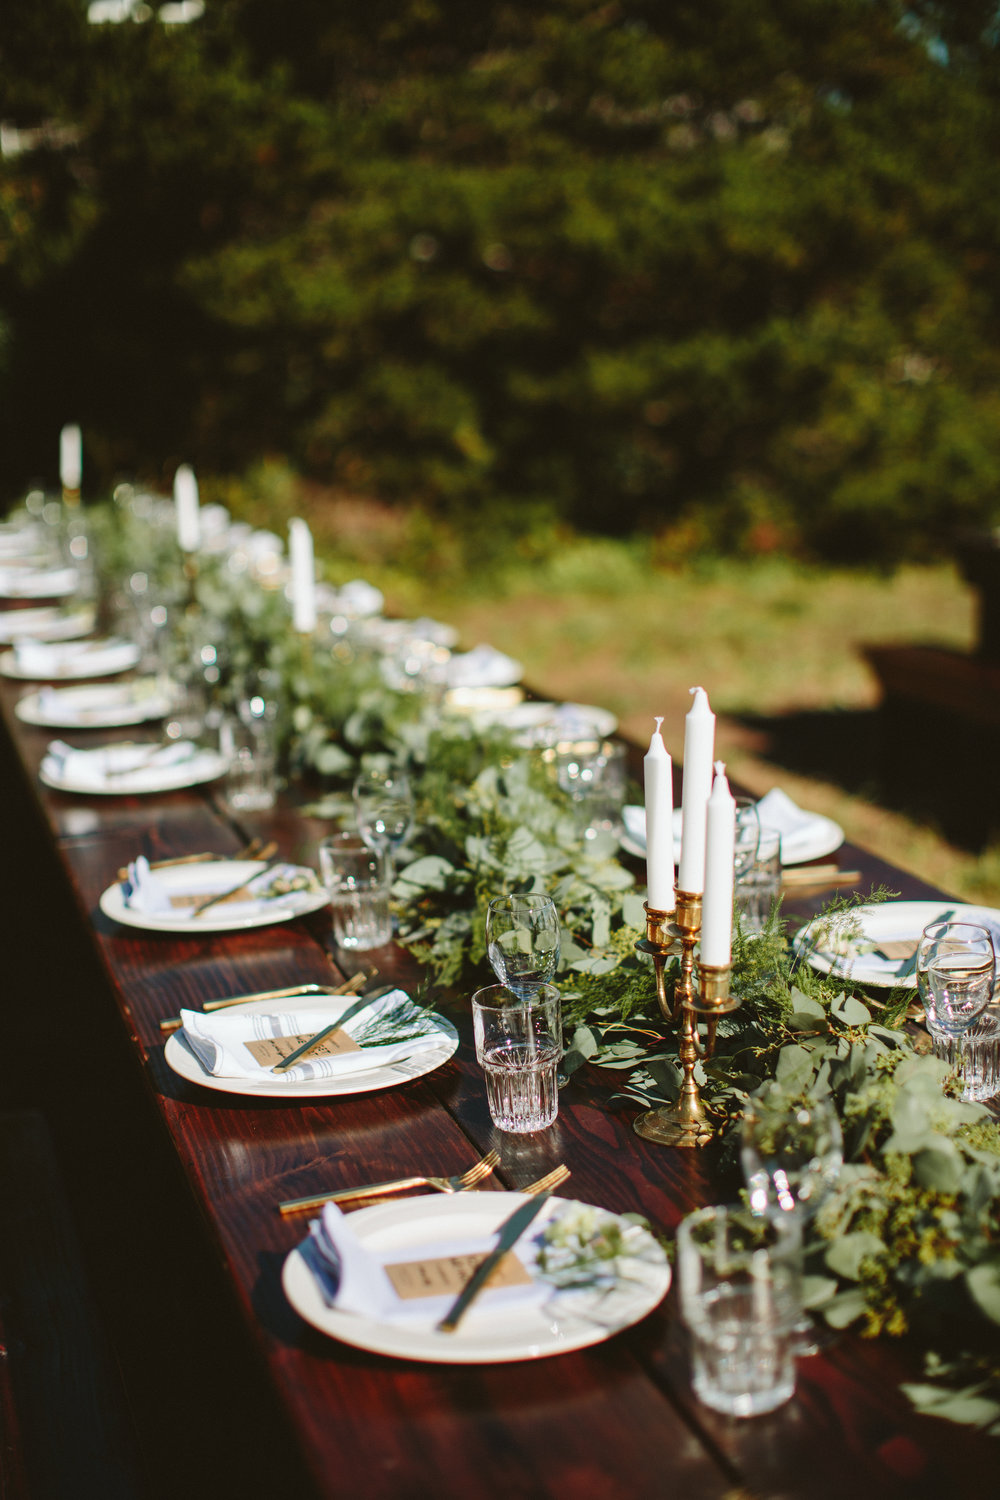 Simple dinner table setting - The Bride S Mom Made The Napkins To Complete This Charming And Simple Table Setting